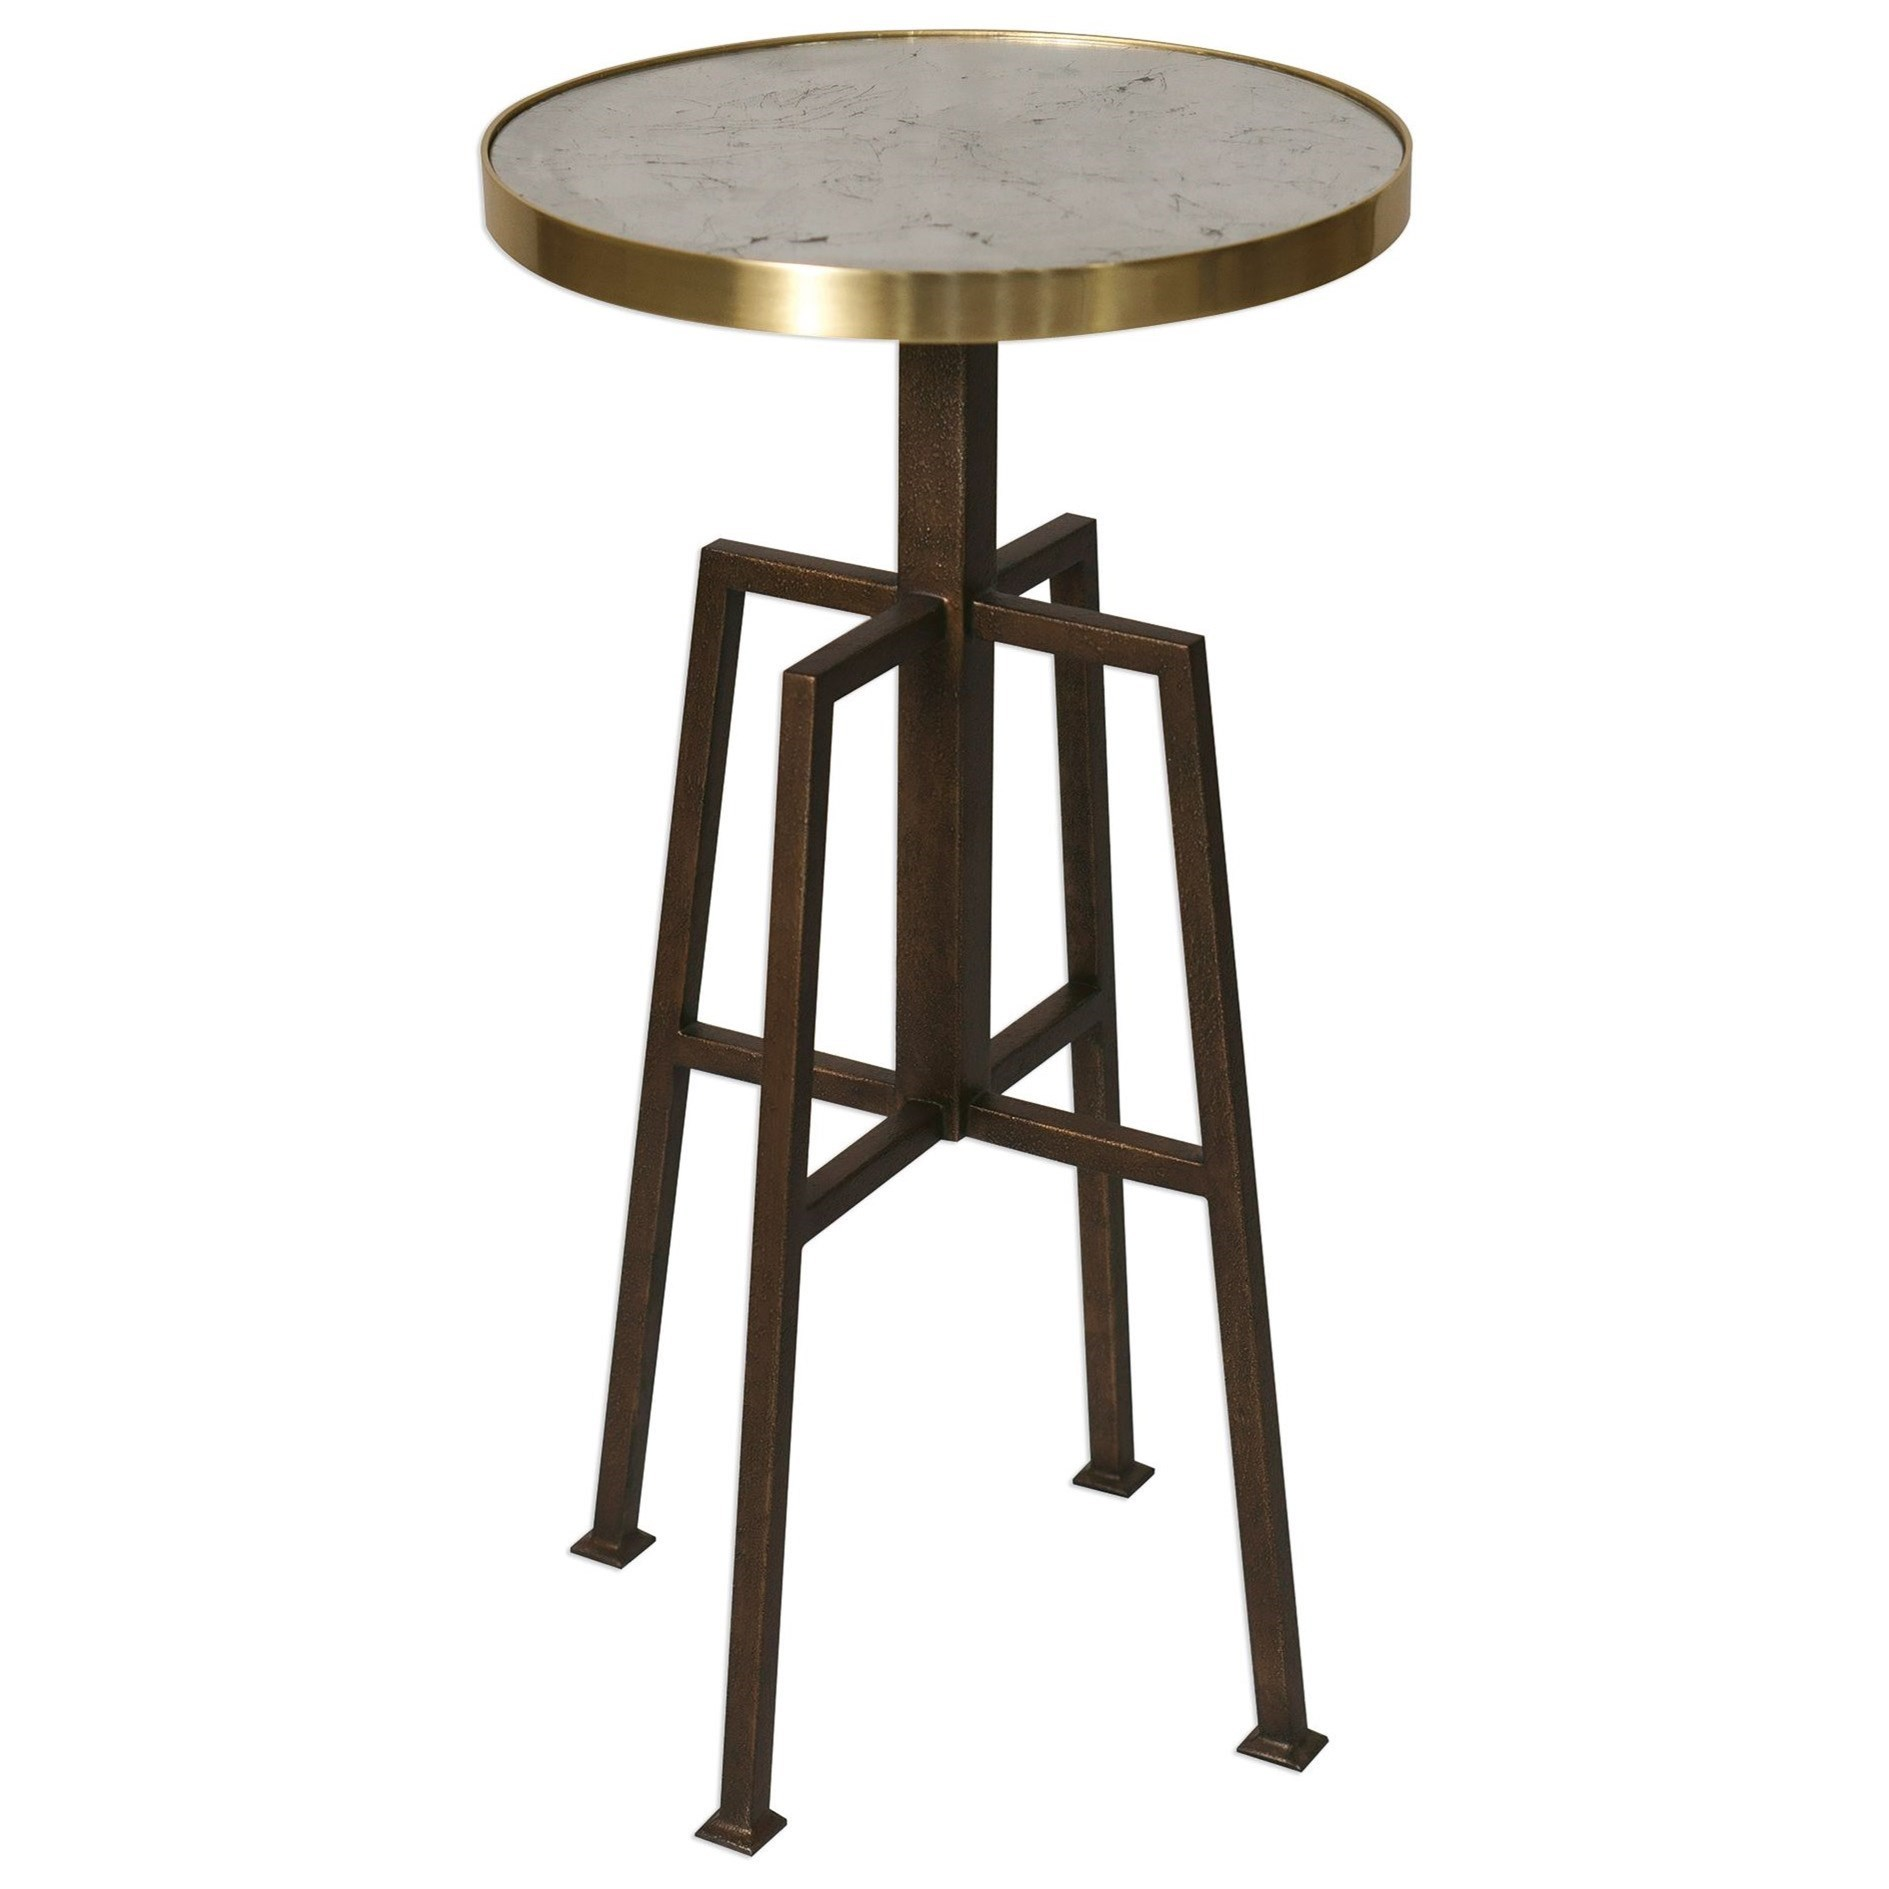 Accent Furniture - Occasional Tables Gisele Round Accent Table by Uttermost at Upper Room Home Furnishings